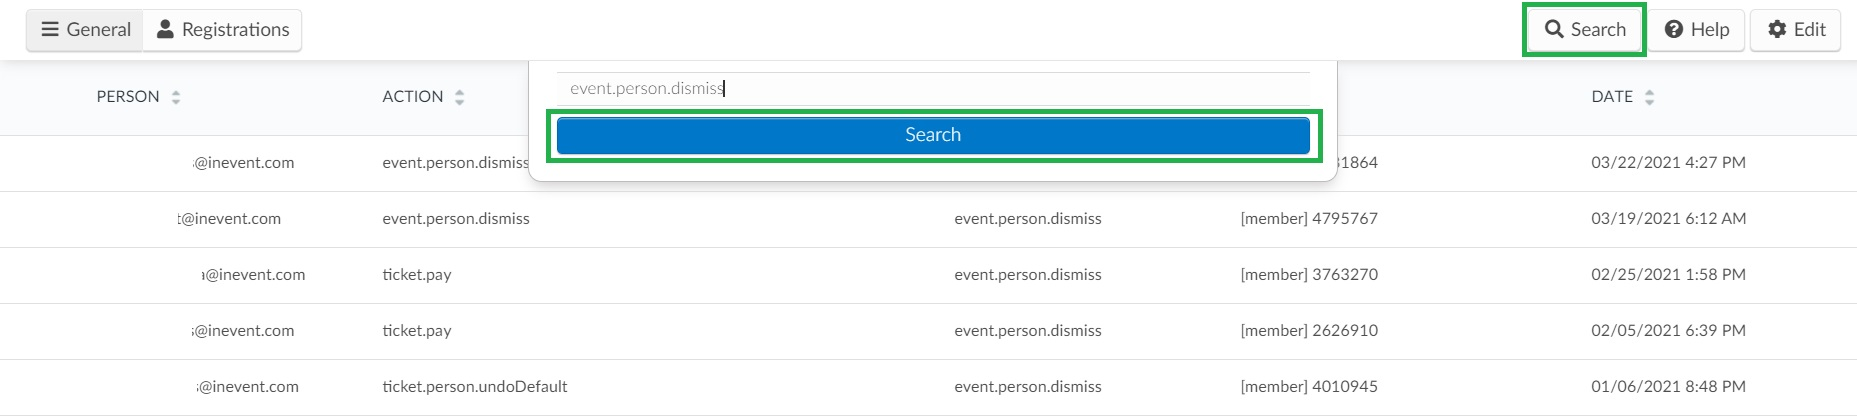 How to search for specific actions